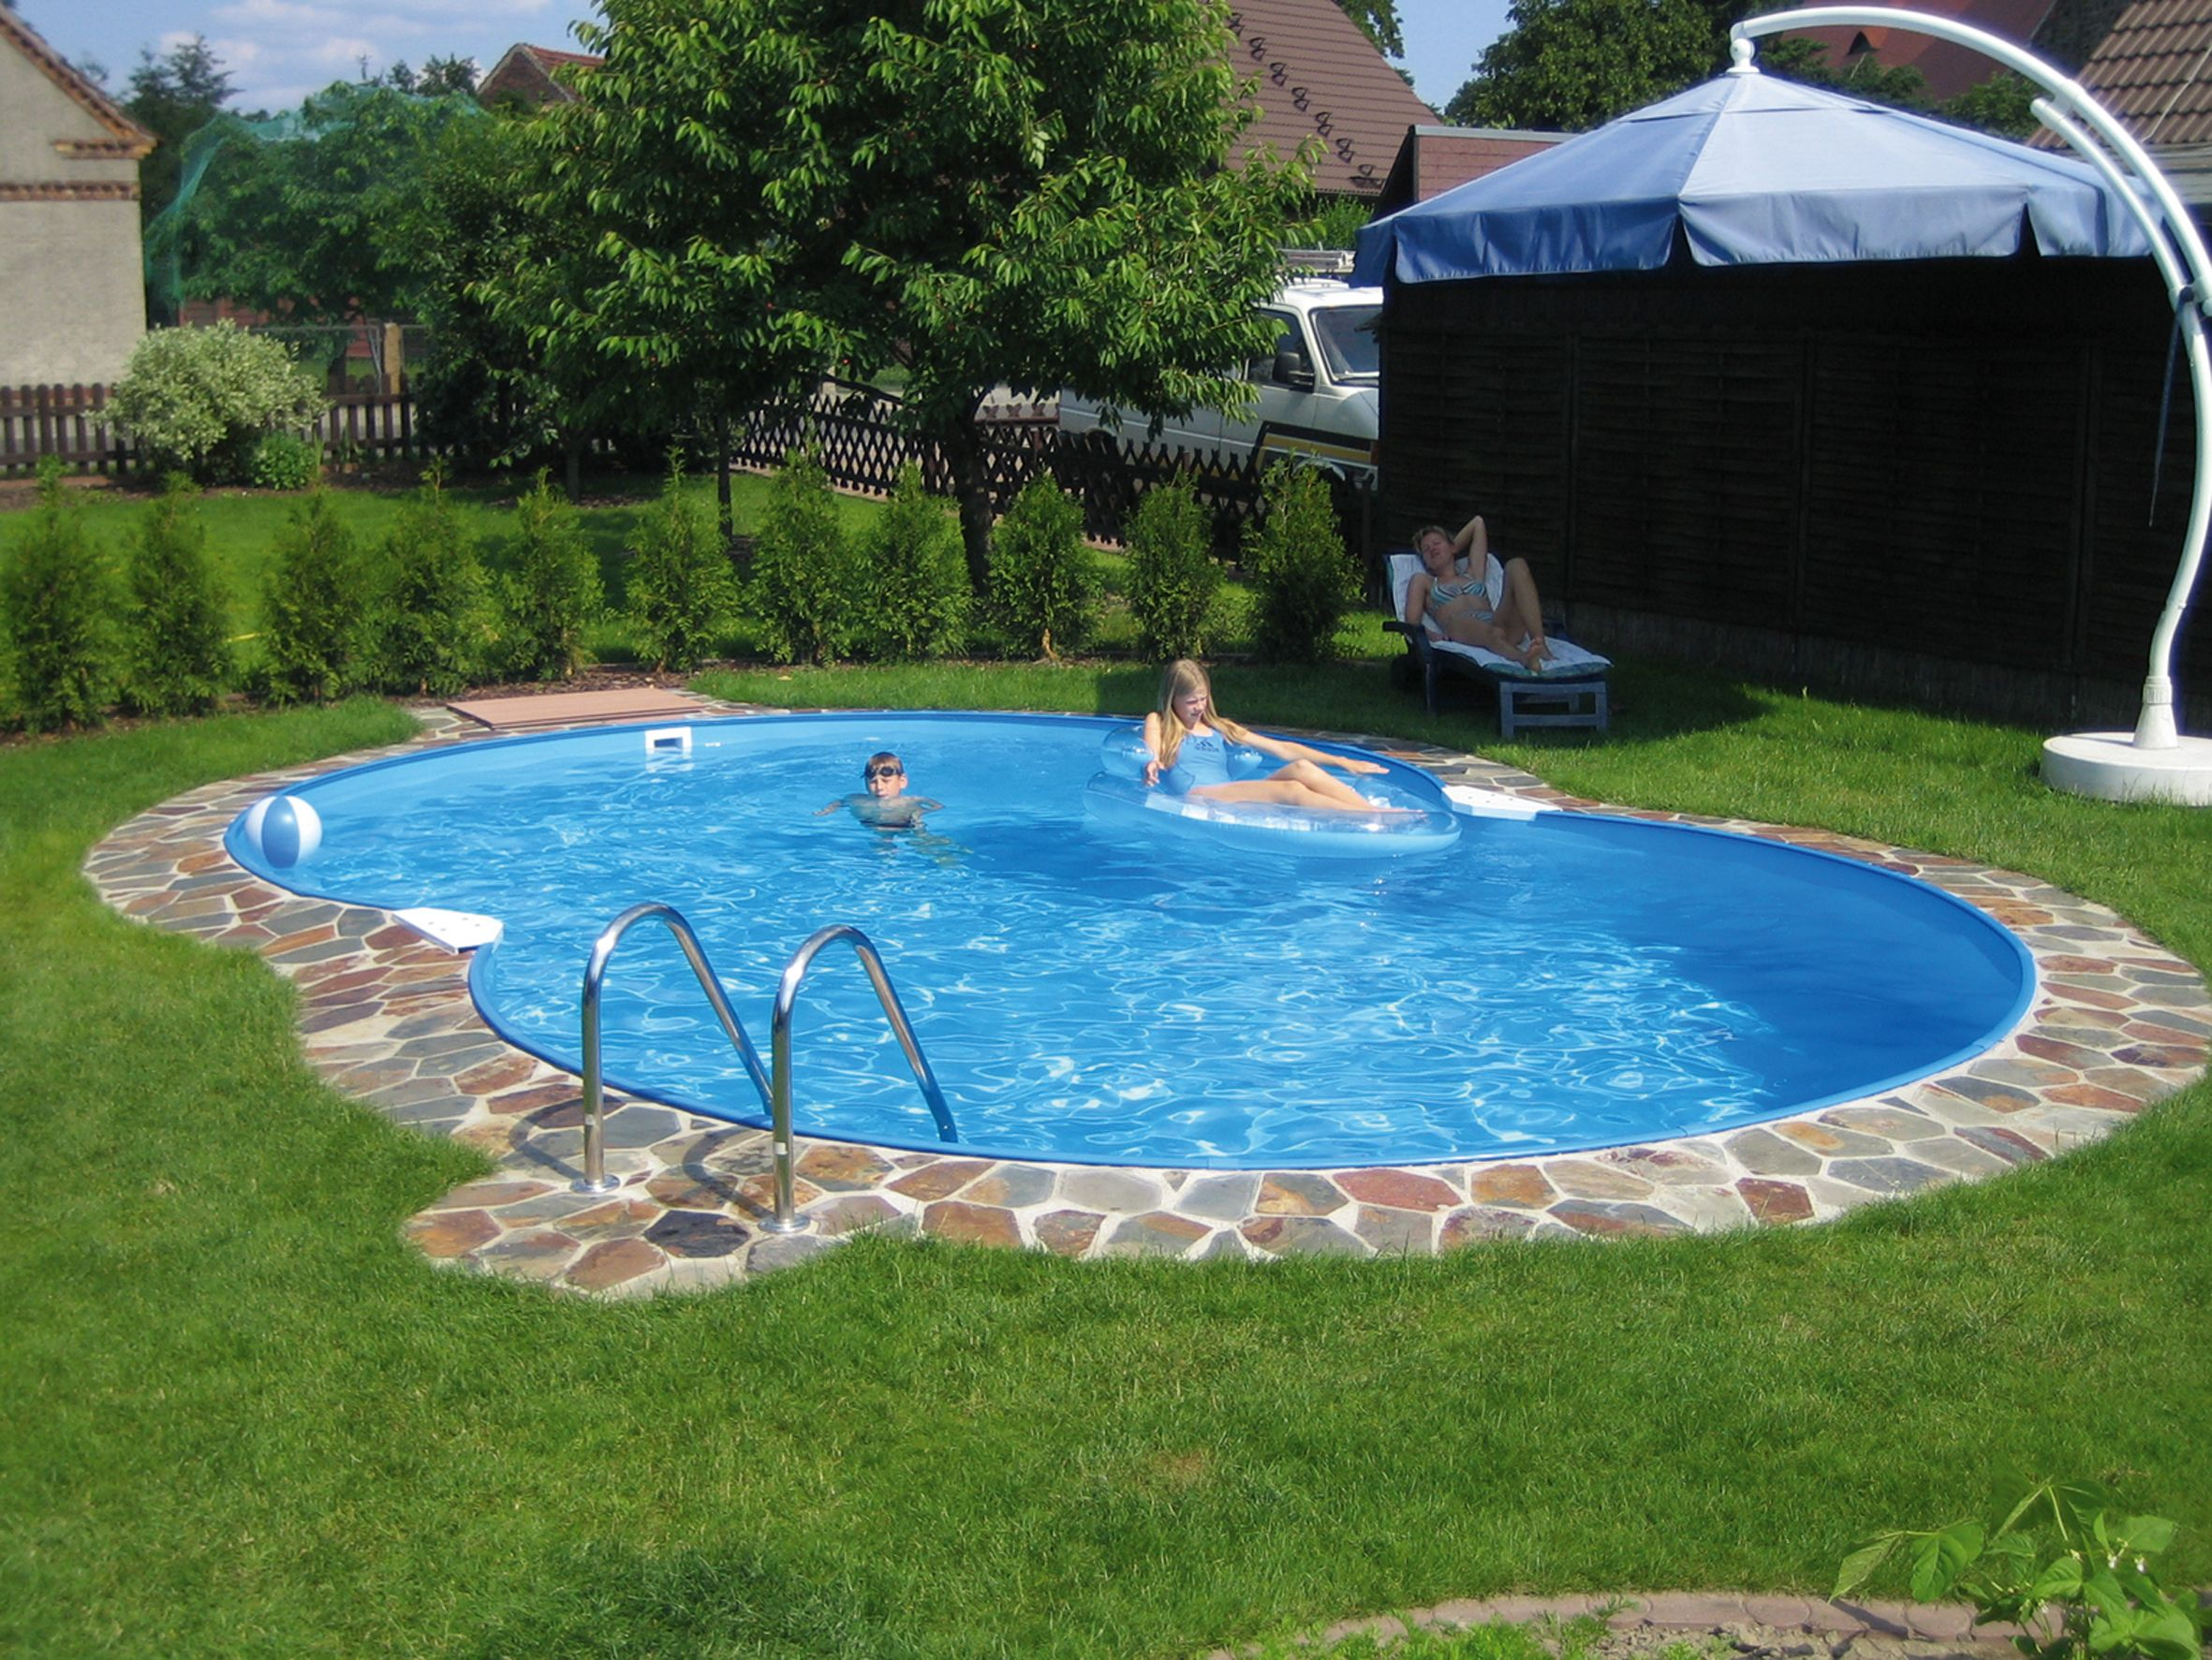 Landscaping Ideas For Inground Swimming Pools pool landscape ideas fetching custom swimming pools and landscaping ideas mahwah nj Backyard Landscaping Ideas Swimming Pool Design Read More At Wwwhomestheticsnet